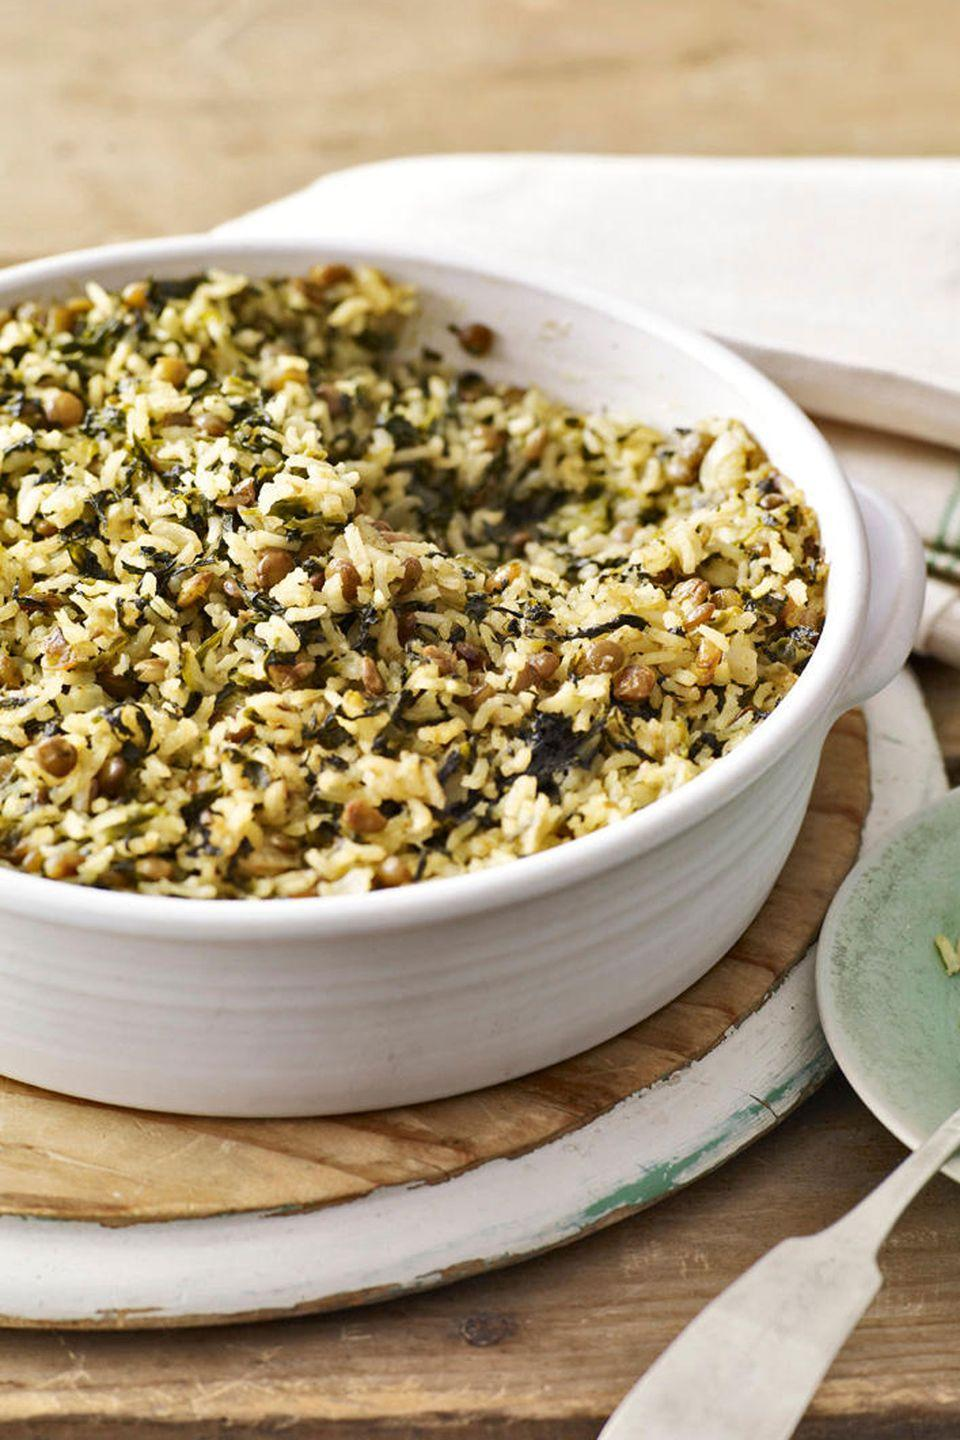 "Baked with lentils and rice in this casserole recipe, frozen spinach makes for a healthy and filling dinner. <a href=""https://www.countryliving.com/food-drinks/recipes/a2798/curried-spinach-lentil-bake-recipe/"" rel=""nofollow noopener"" target=""_blank"" data-ylk=""slk:Get the recipe."" class=""link rapid-noclick-resp""><strong>Get the recipe.</strong></a>"